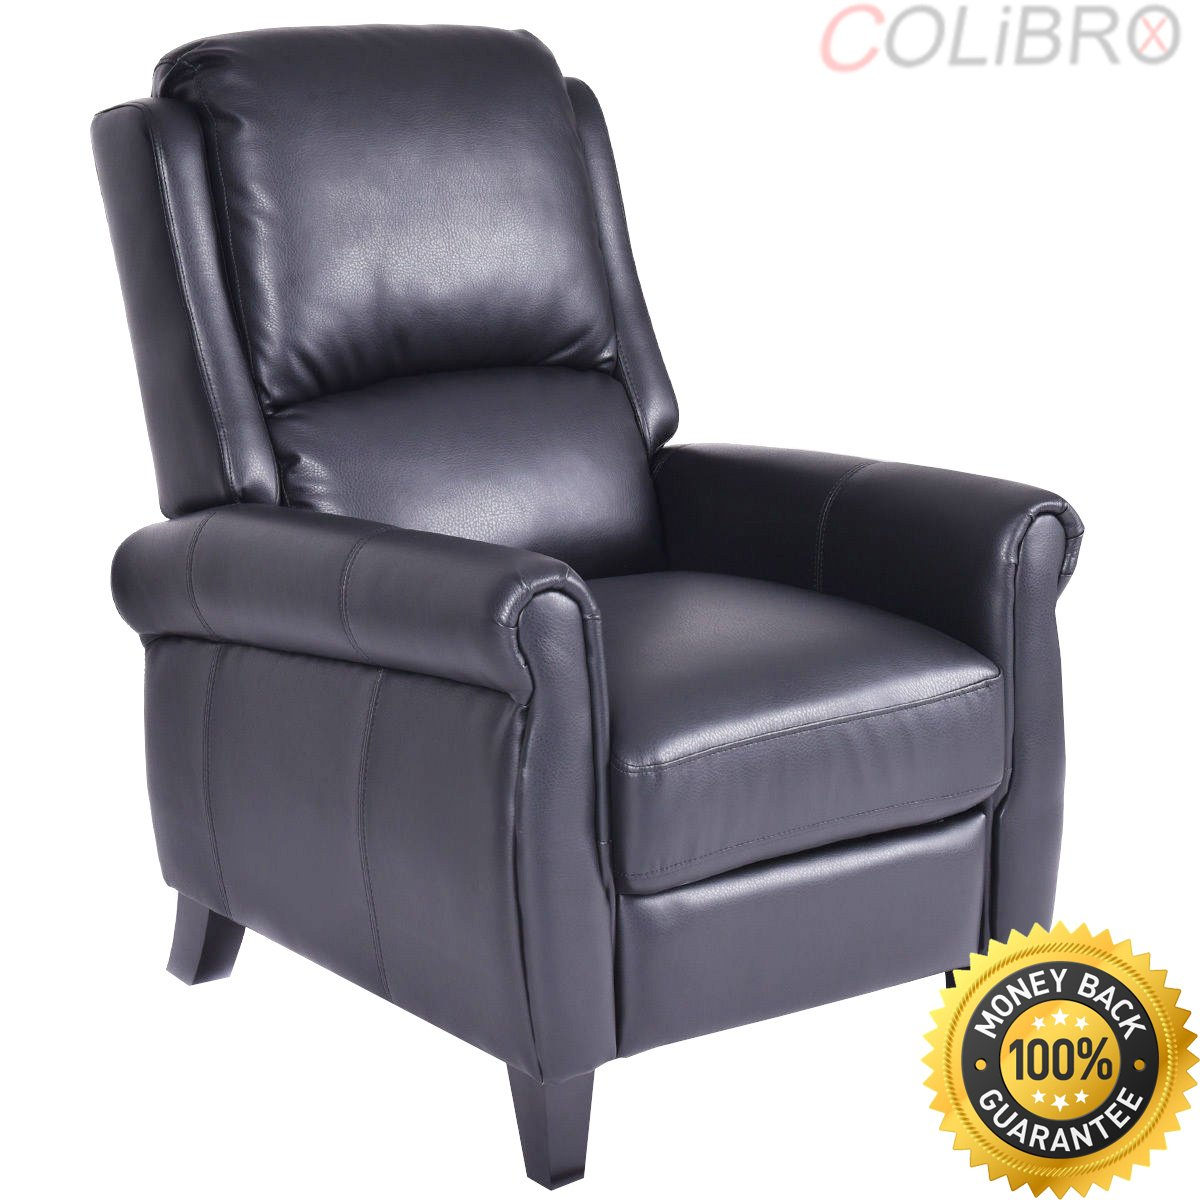 Colibrox leather recliner accent chair push back living room home furniture w leg rests best push back recliner recliner chair walmart leather